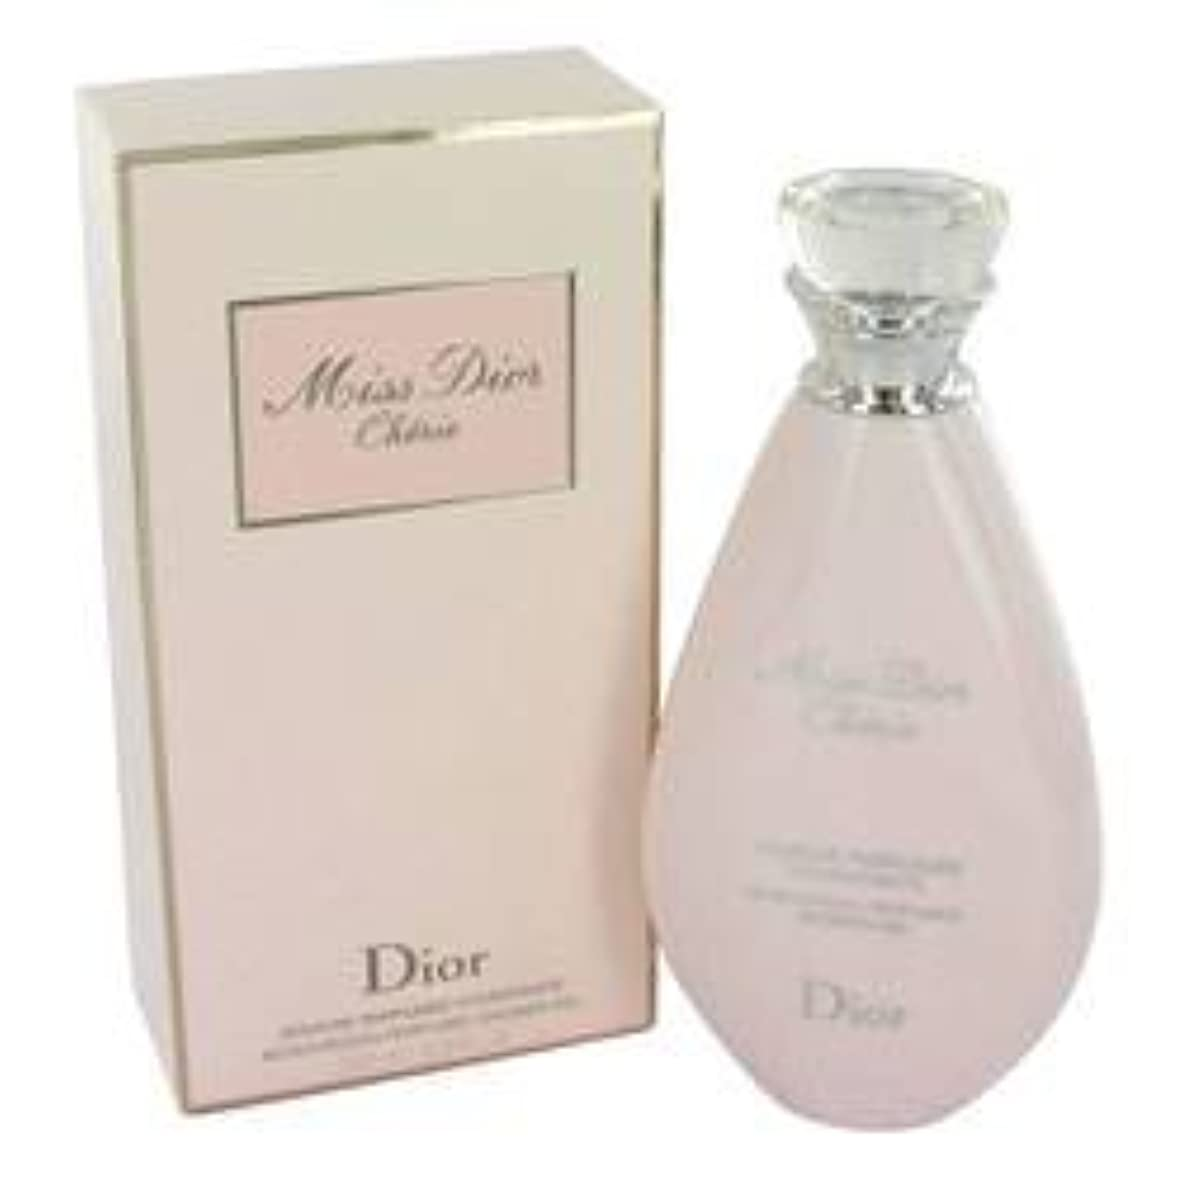 霧深い誘惑する幸福Miss Dior (miss Dior Cherie) Shower Gel By Christian Dior